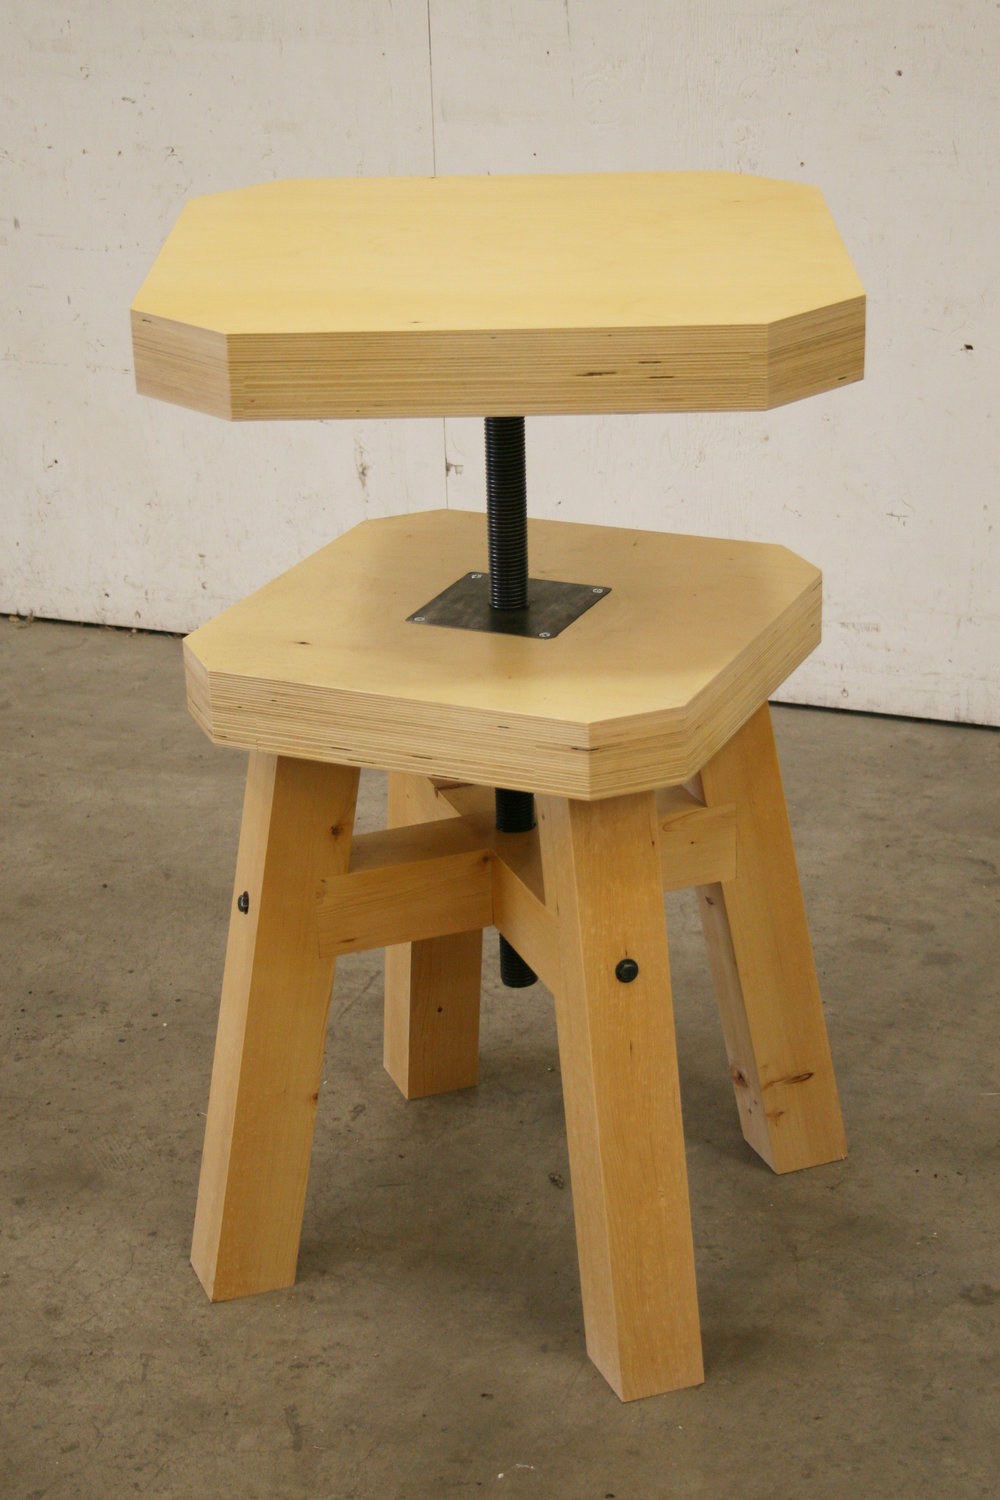 Sculptors Table (Concept).  Laminated Birch Plywood, Fir, Steel.